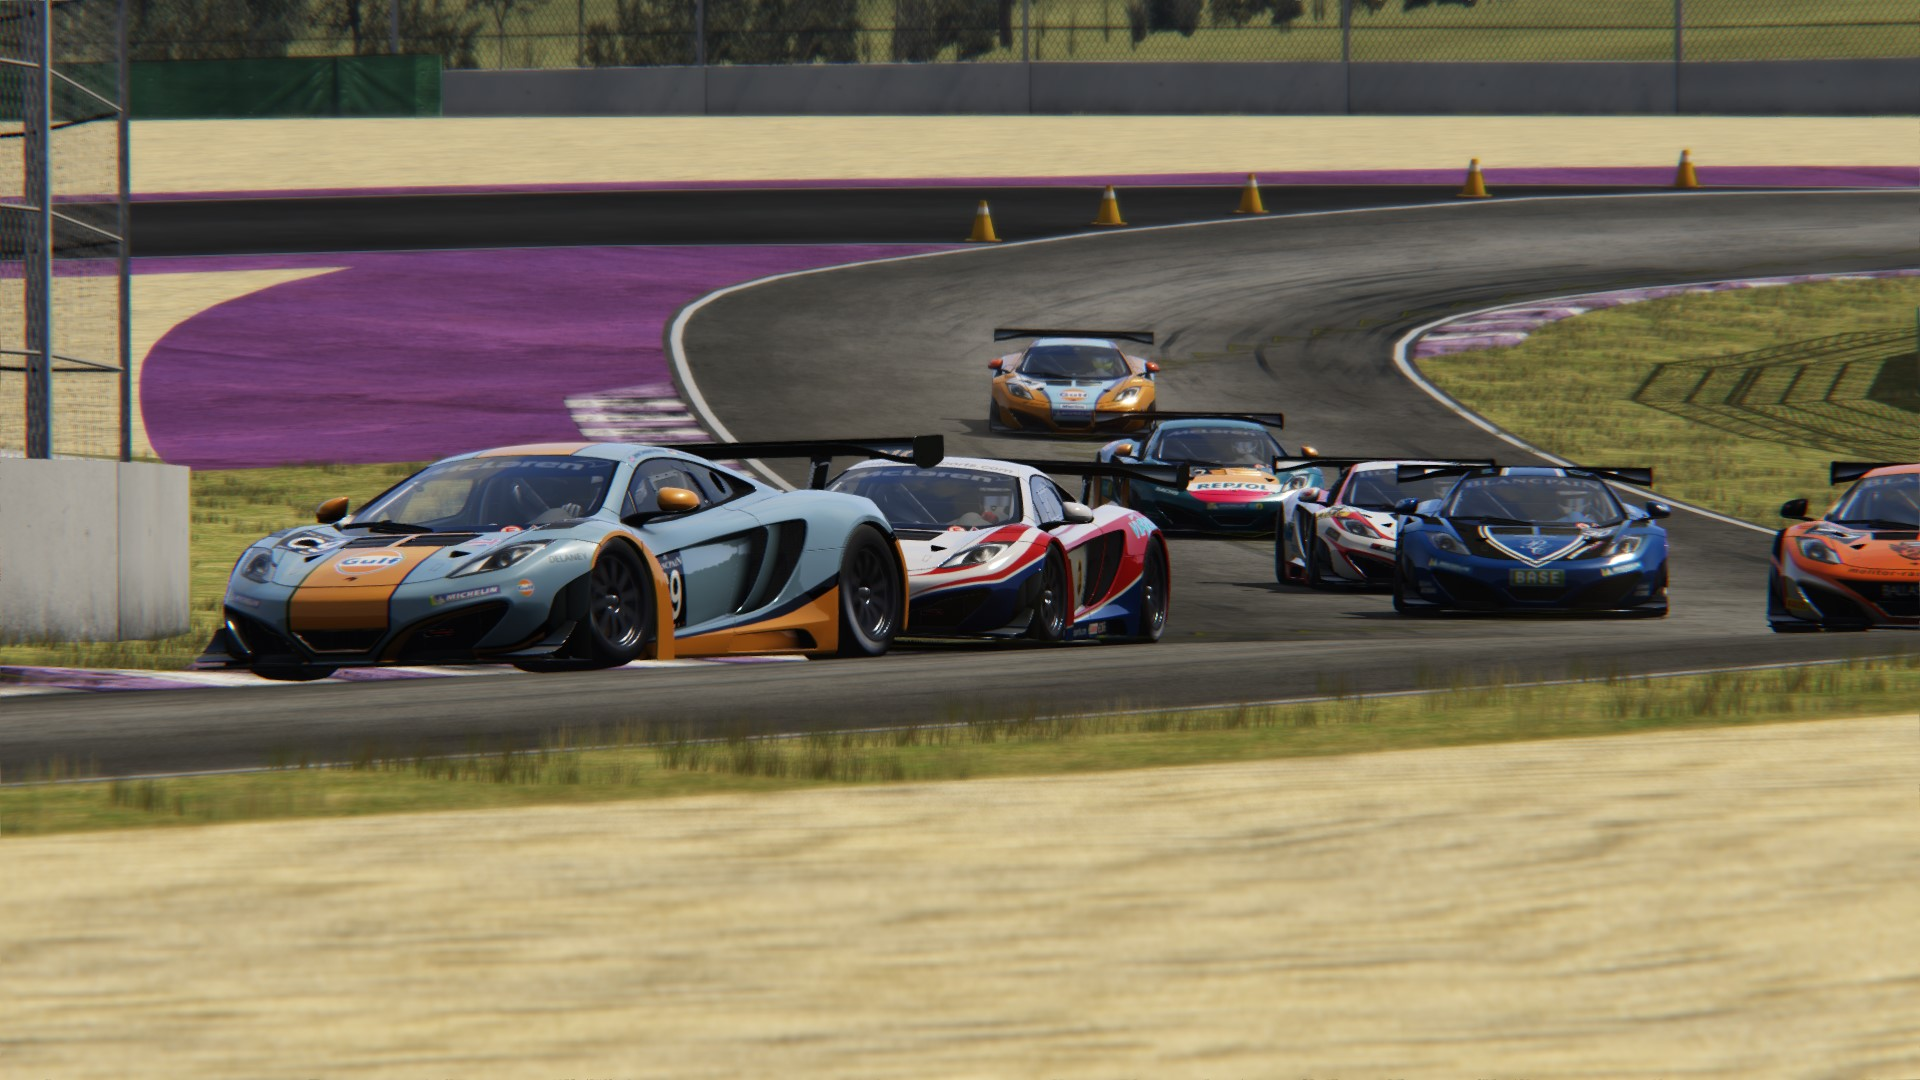 Screenshot_mclaren_mp412c_gt3_toscana_22-5-117-15-29-14.jpg